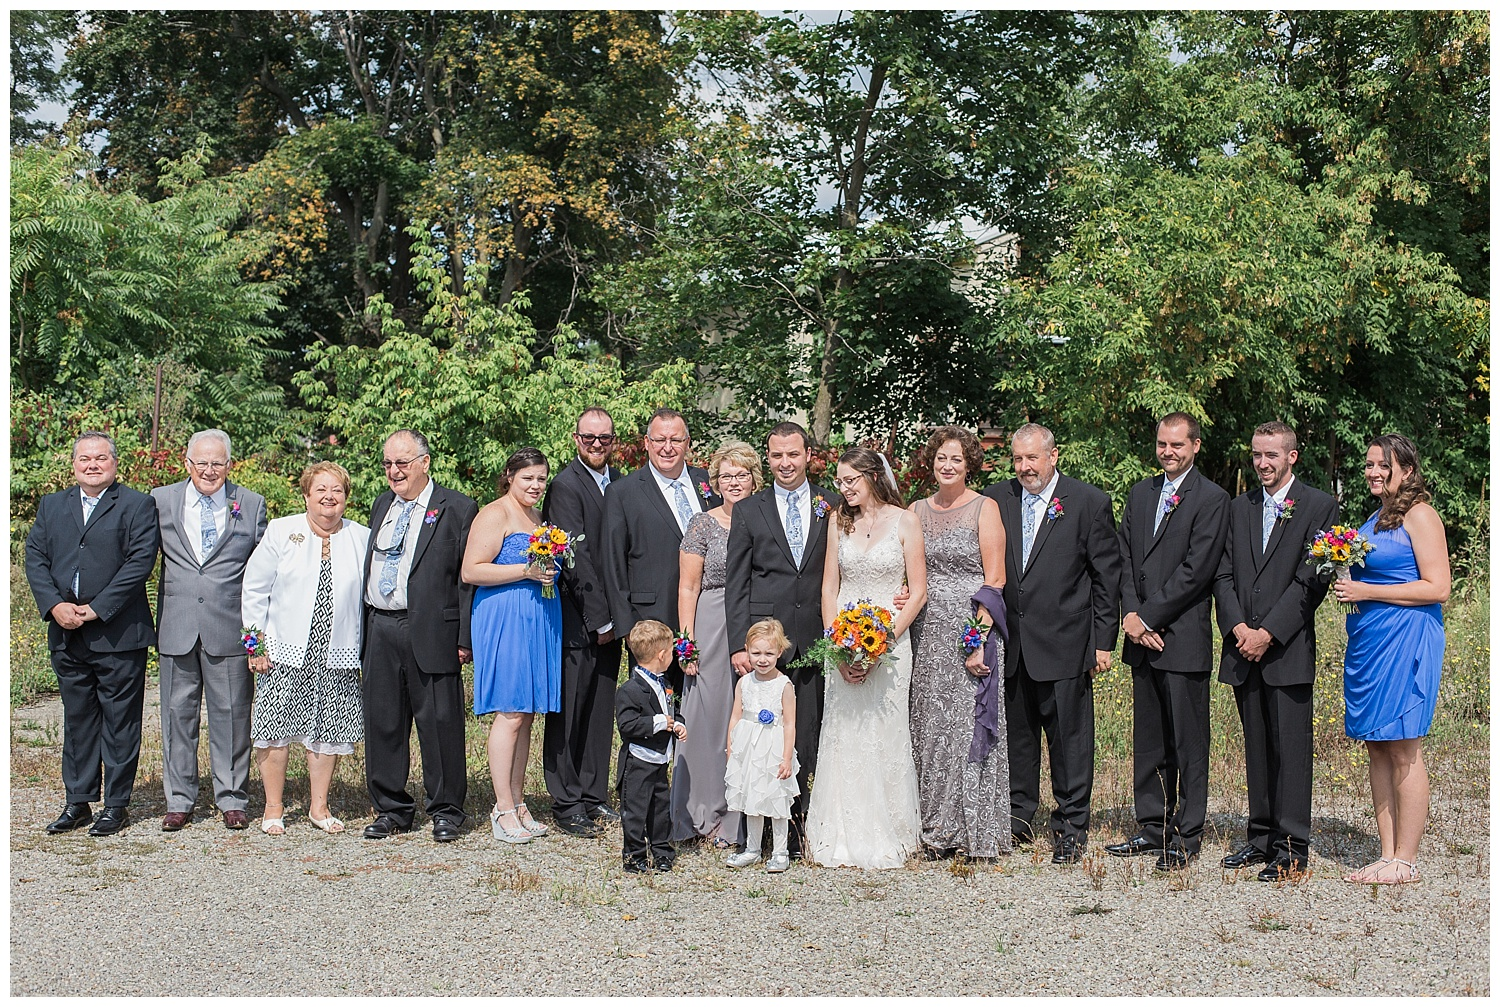 Chris and Leanne Hindle - Nugget Hill - Wayland NY - Lass and Beau-517_Buffalo wedding photography.jpg